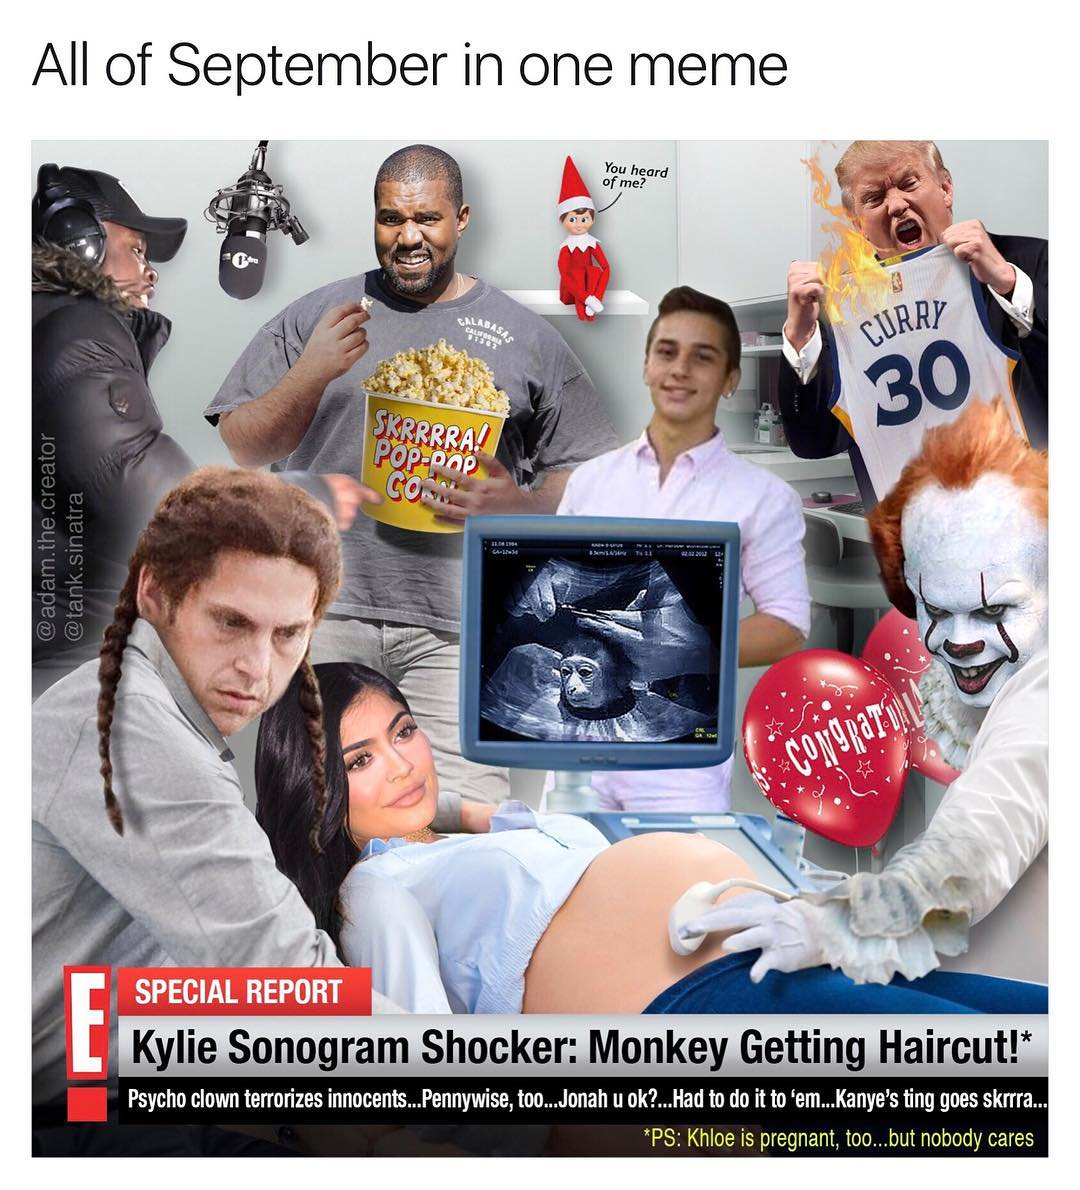 61c all of september 2017 in one meme meme overload know your meme